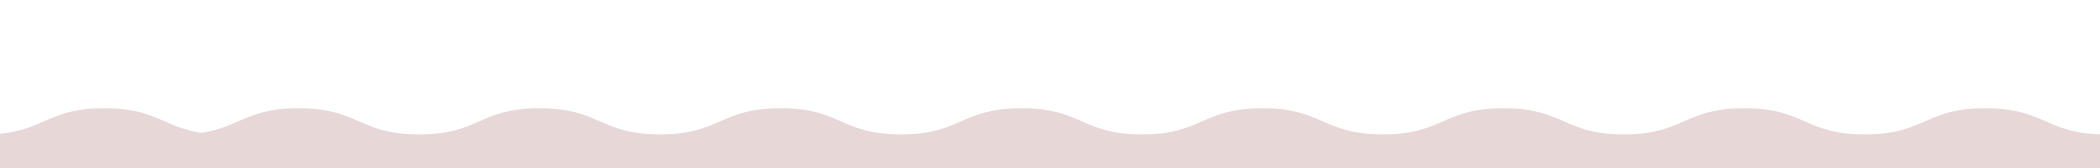 http://pastry.bold-themes.com/wp-content/uploads/2017/10/pink_divider_bottom.png